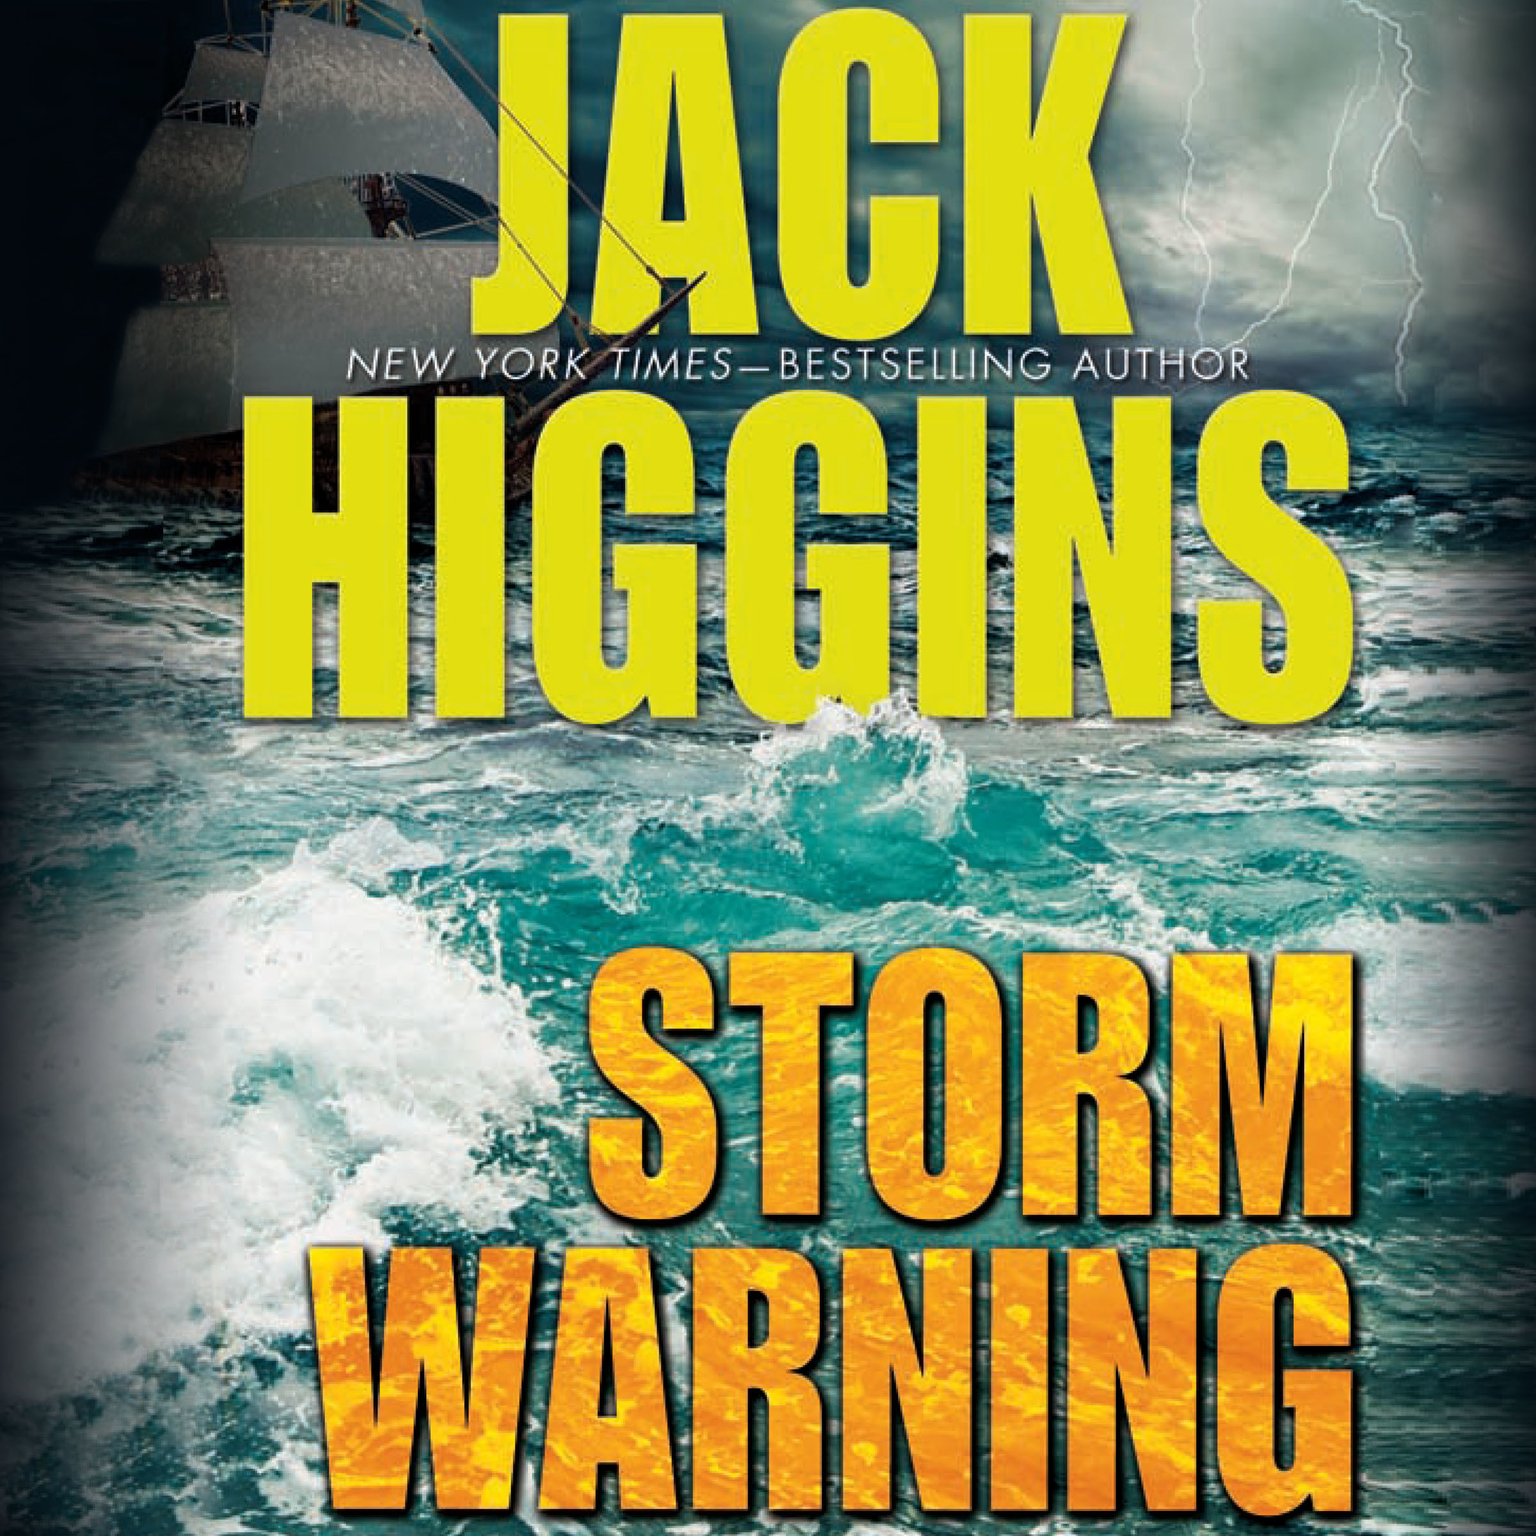 Printable Storm Warning Audiobook Cover Art